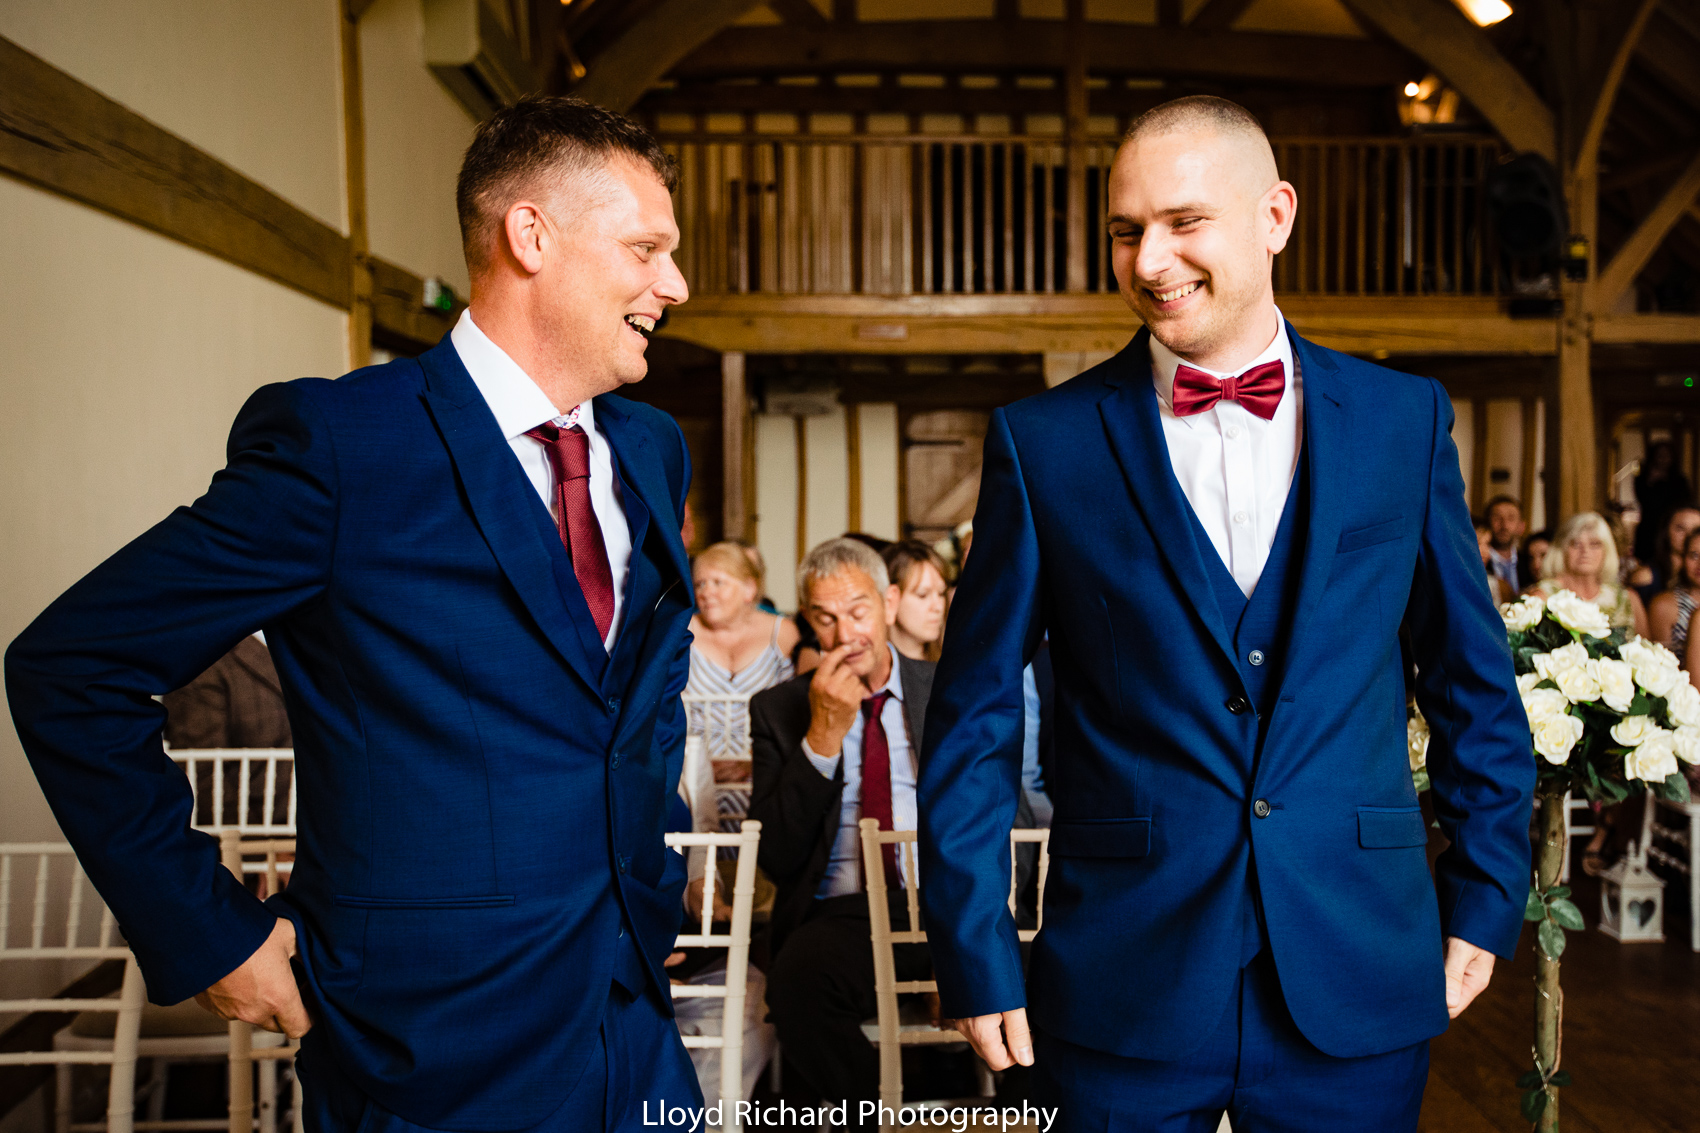 Groom and best man at Cain Manor